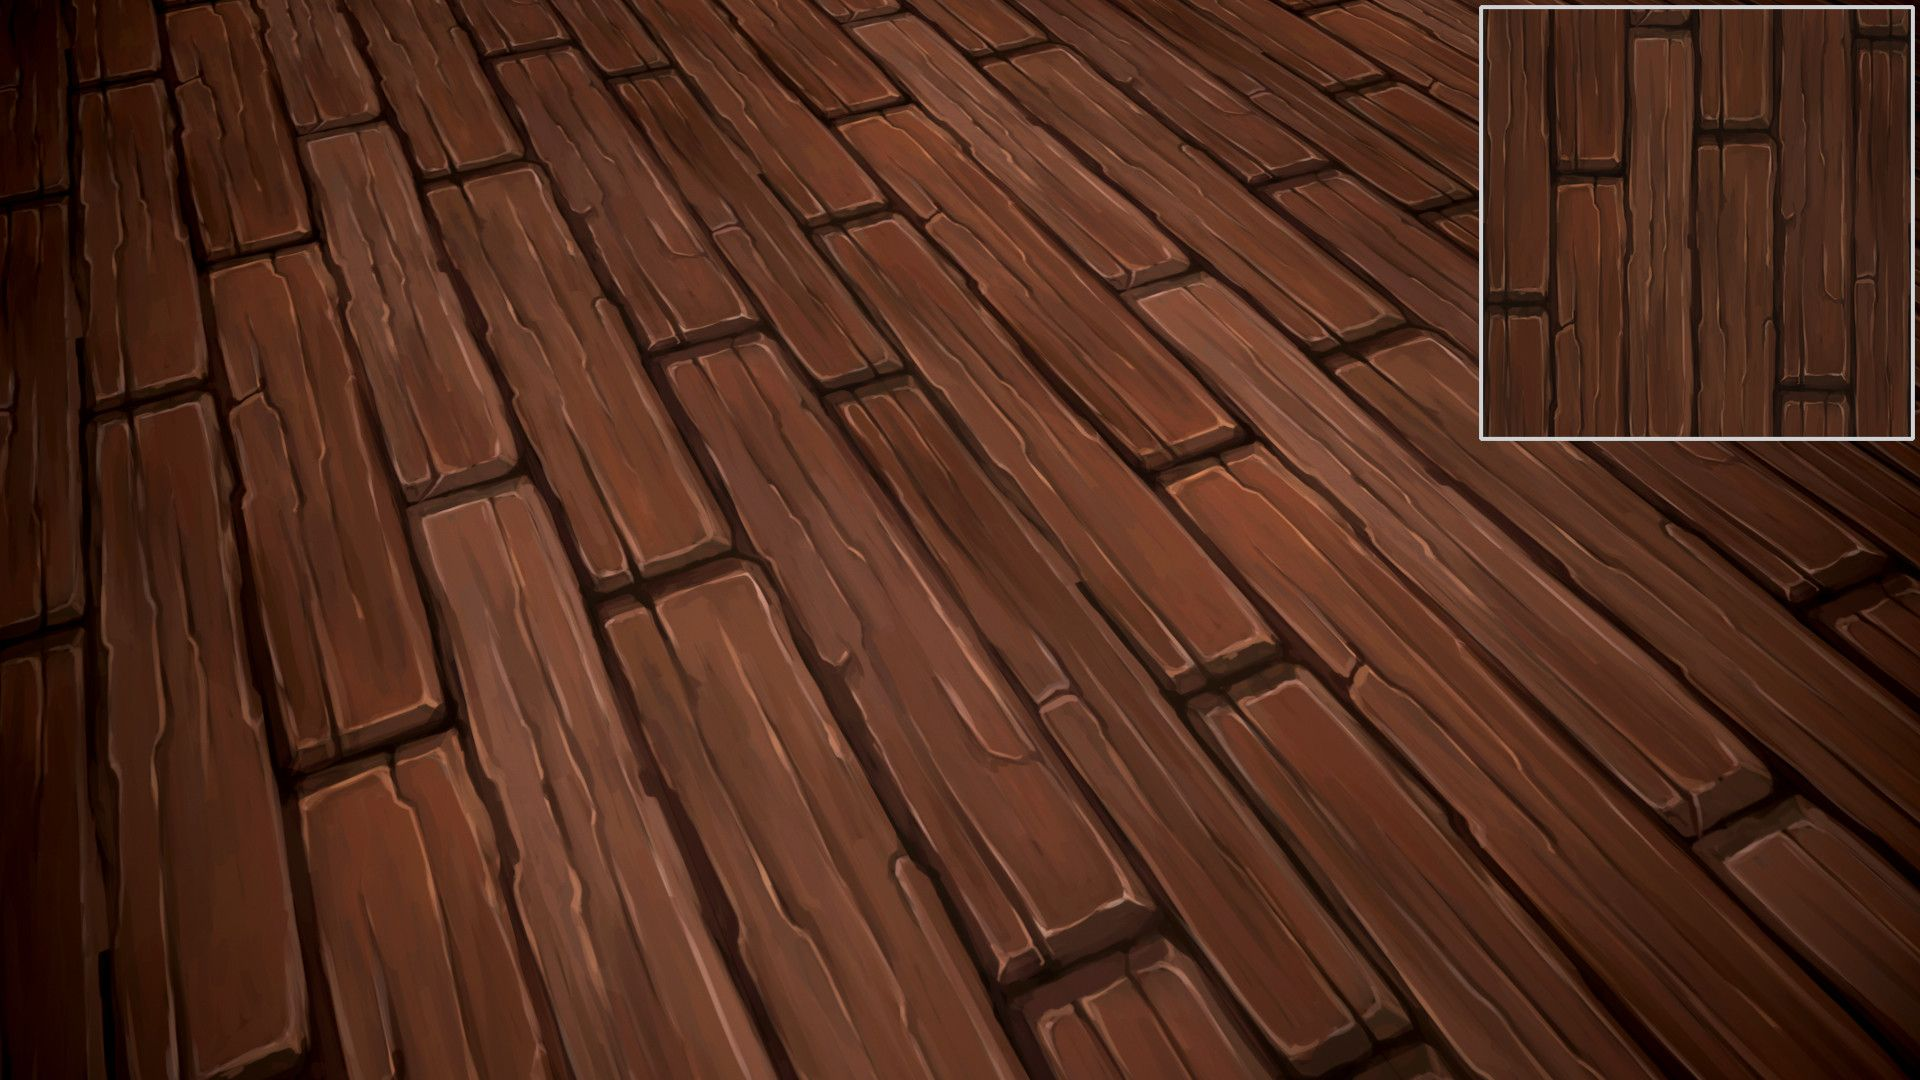 Artstation Tillable Textures Vol 1 Nick Ward Floorboards Texture Painted Floorboards